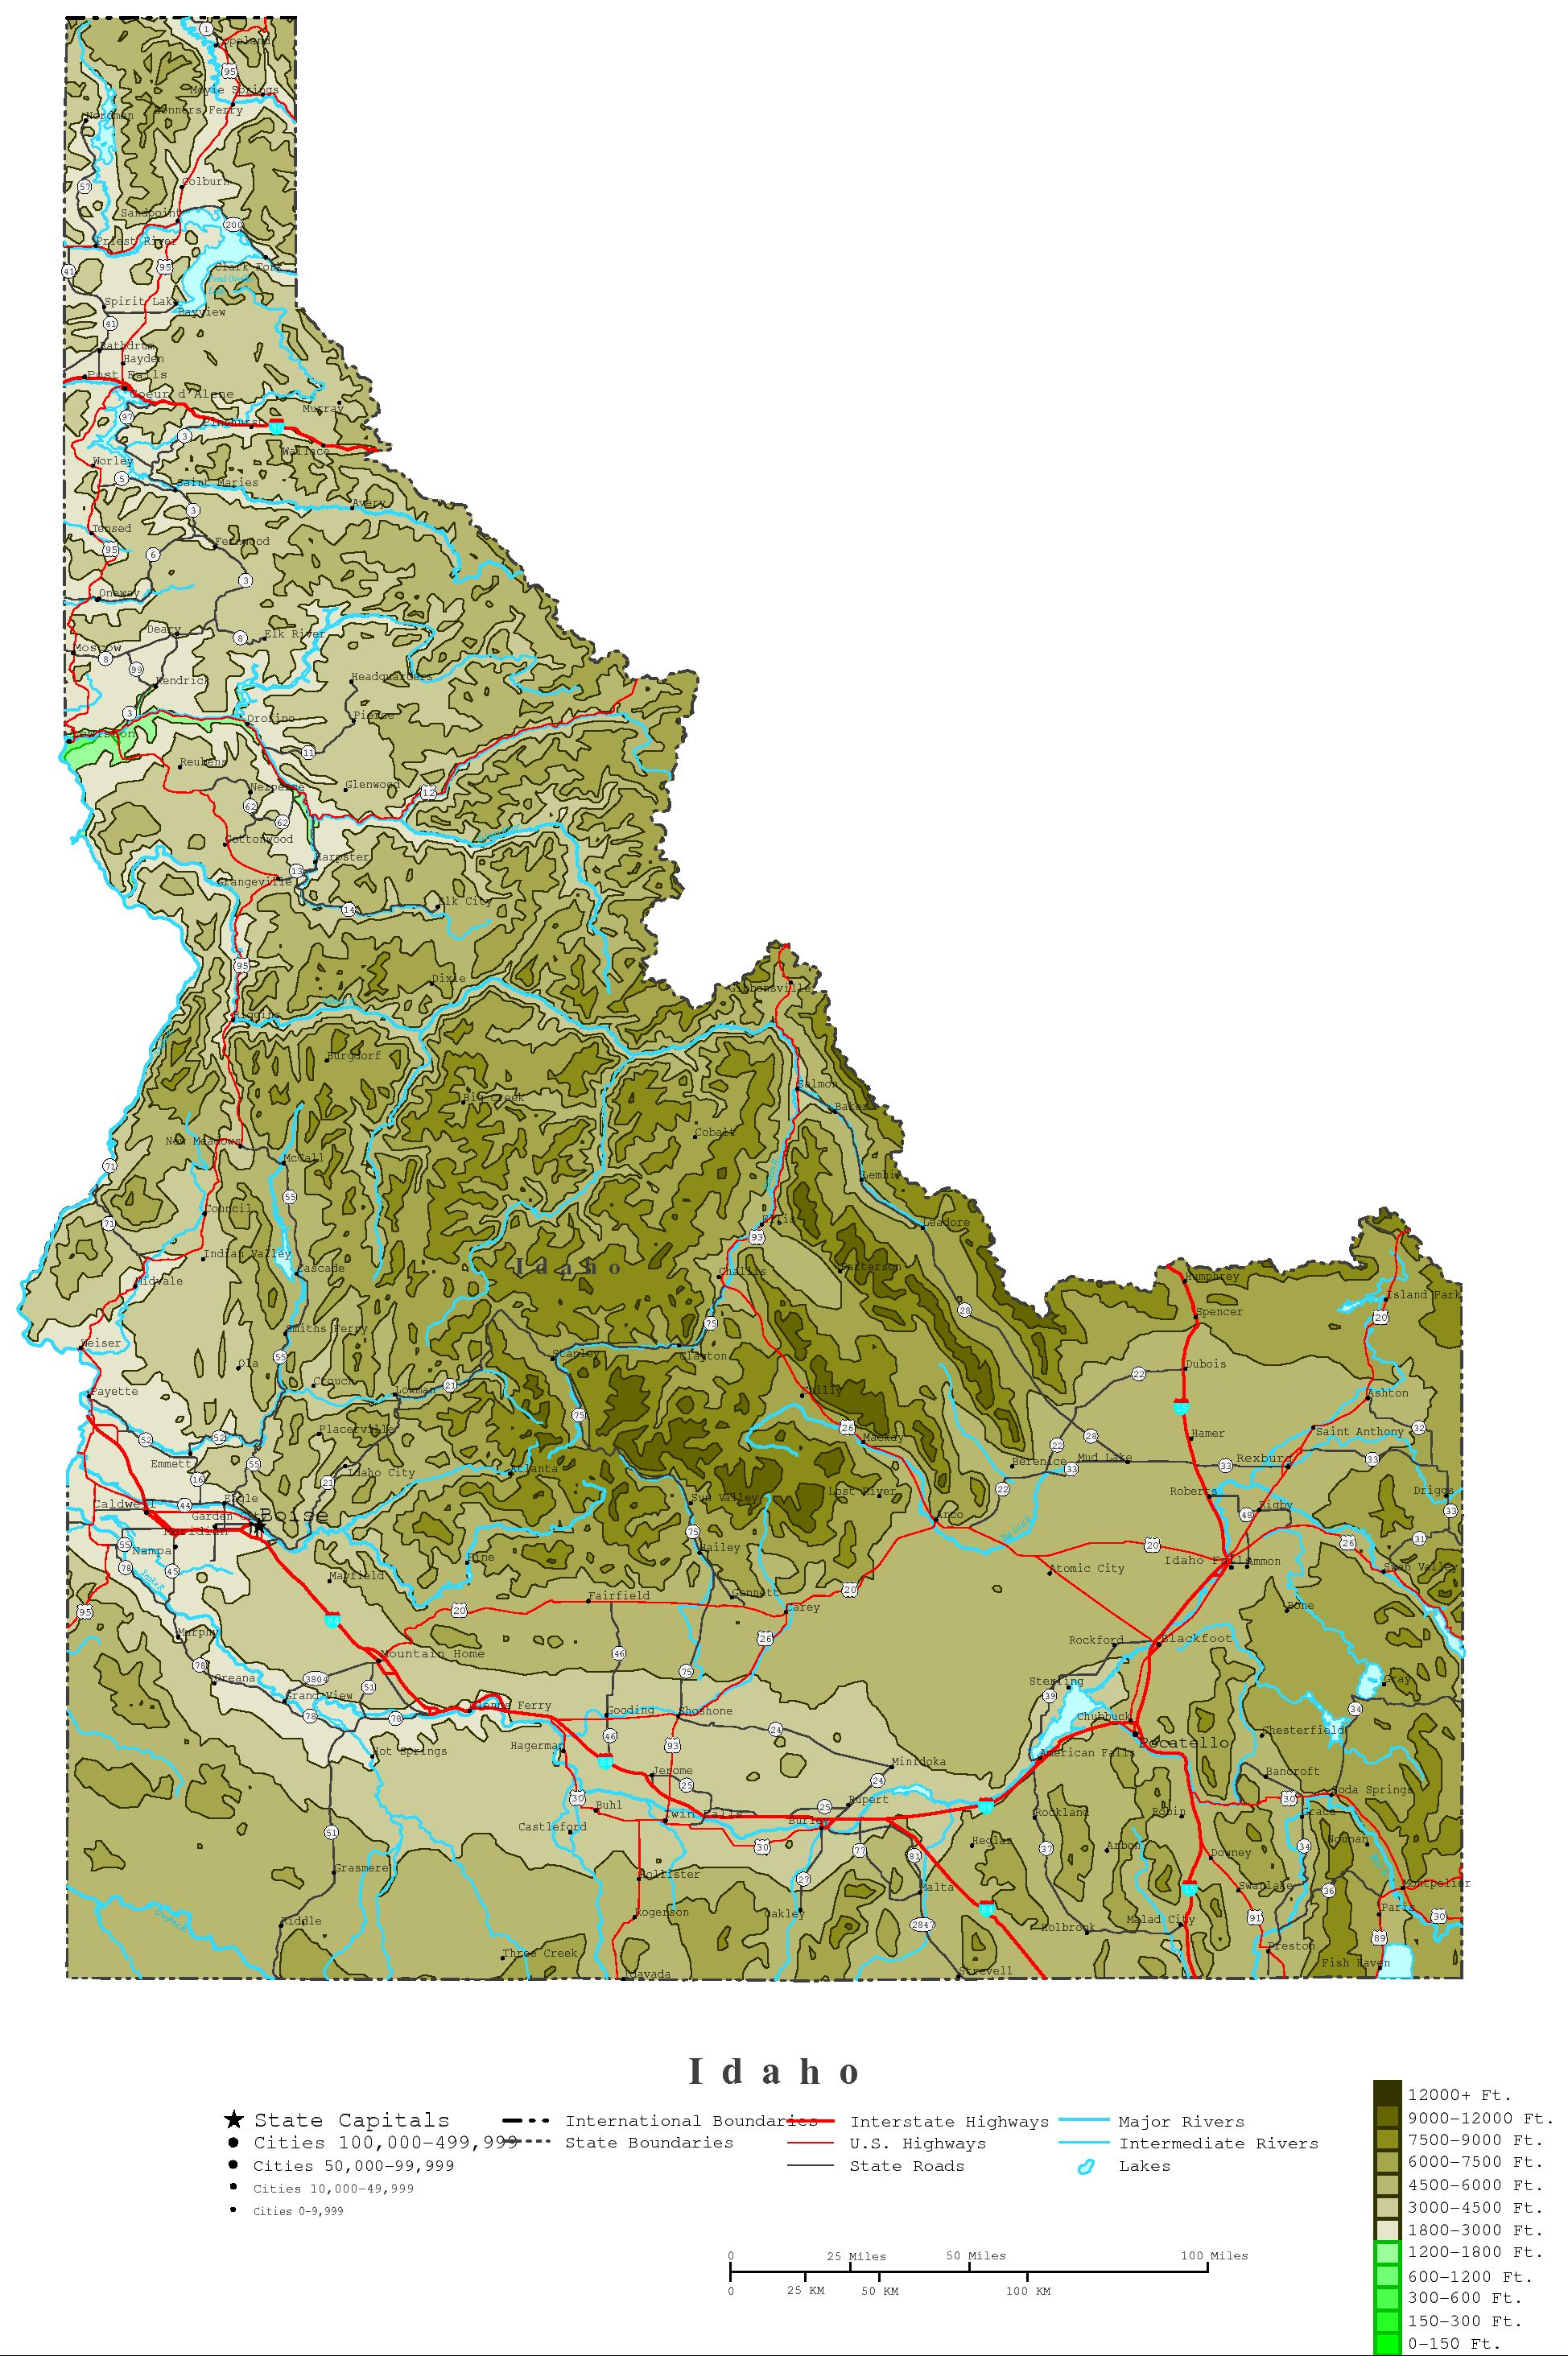 Idaho Contour Map - Idaho political map